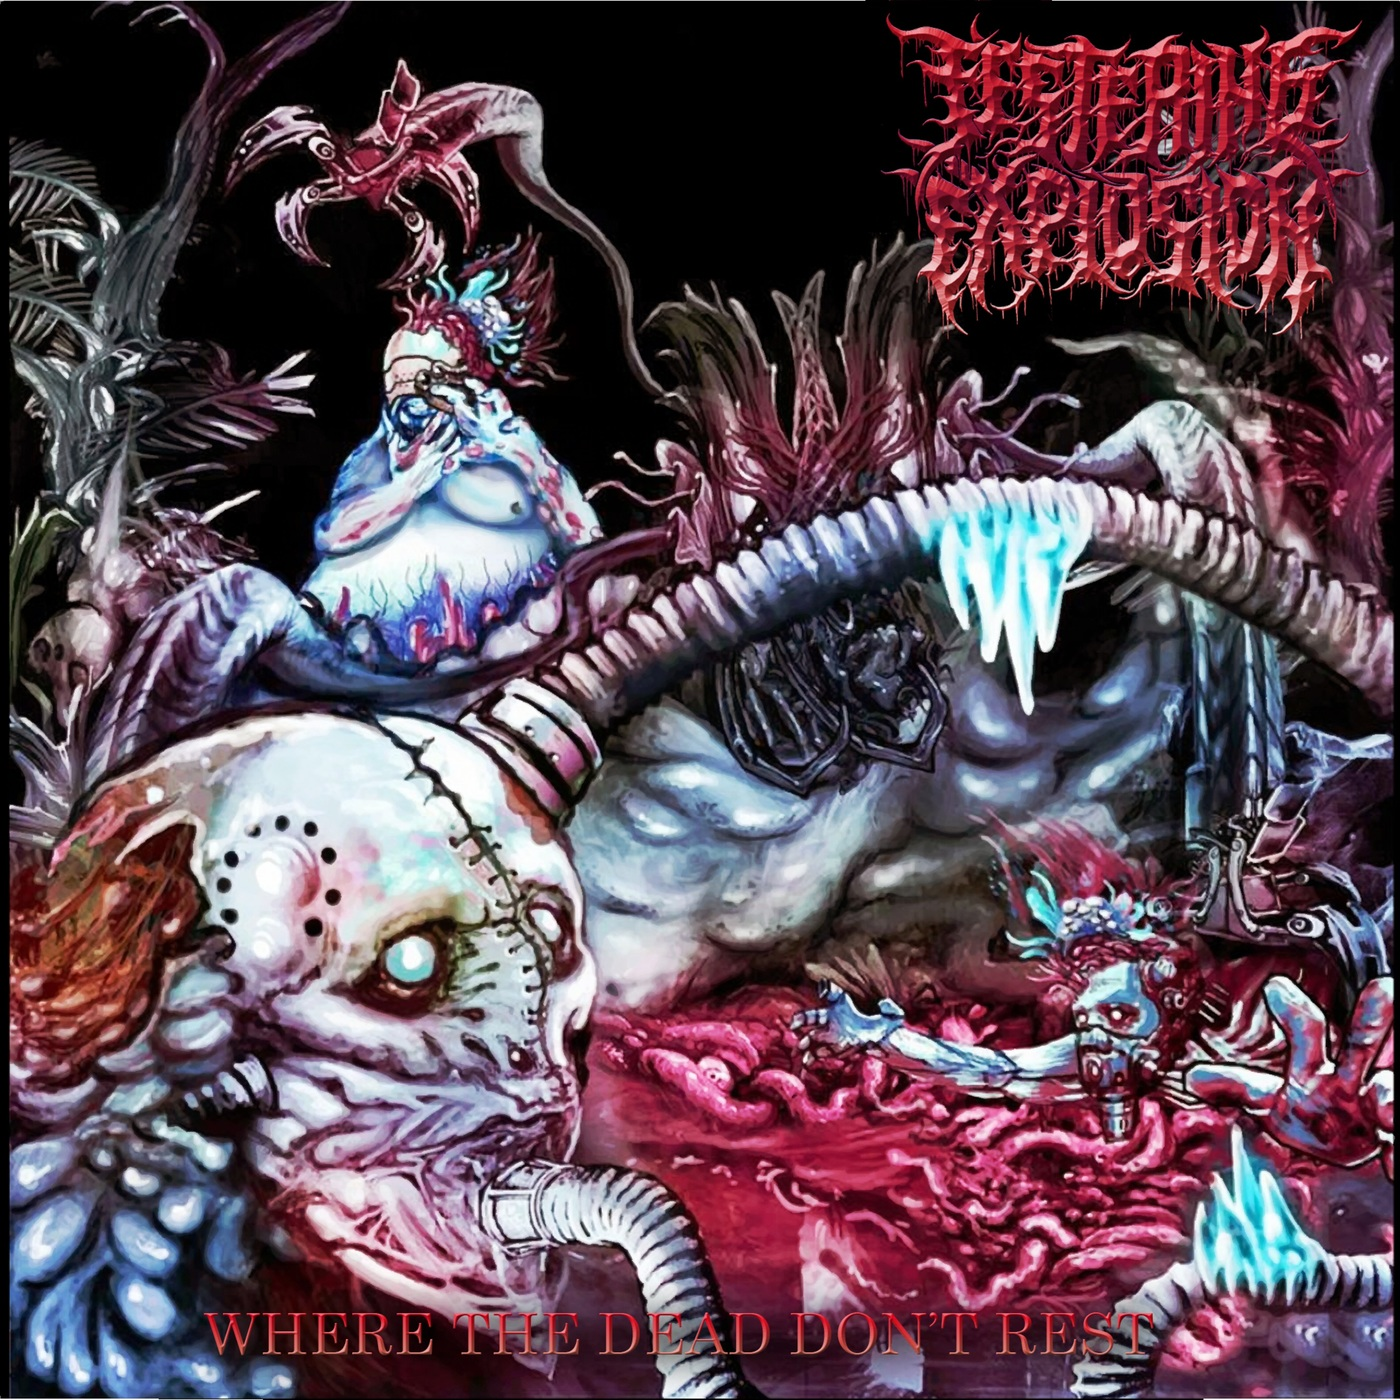 Festering Explosion - Where the Dead Don't Rest